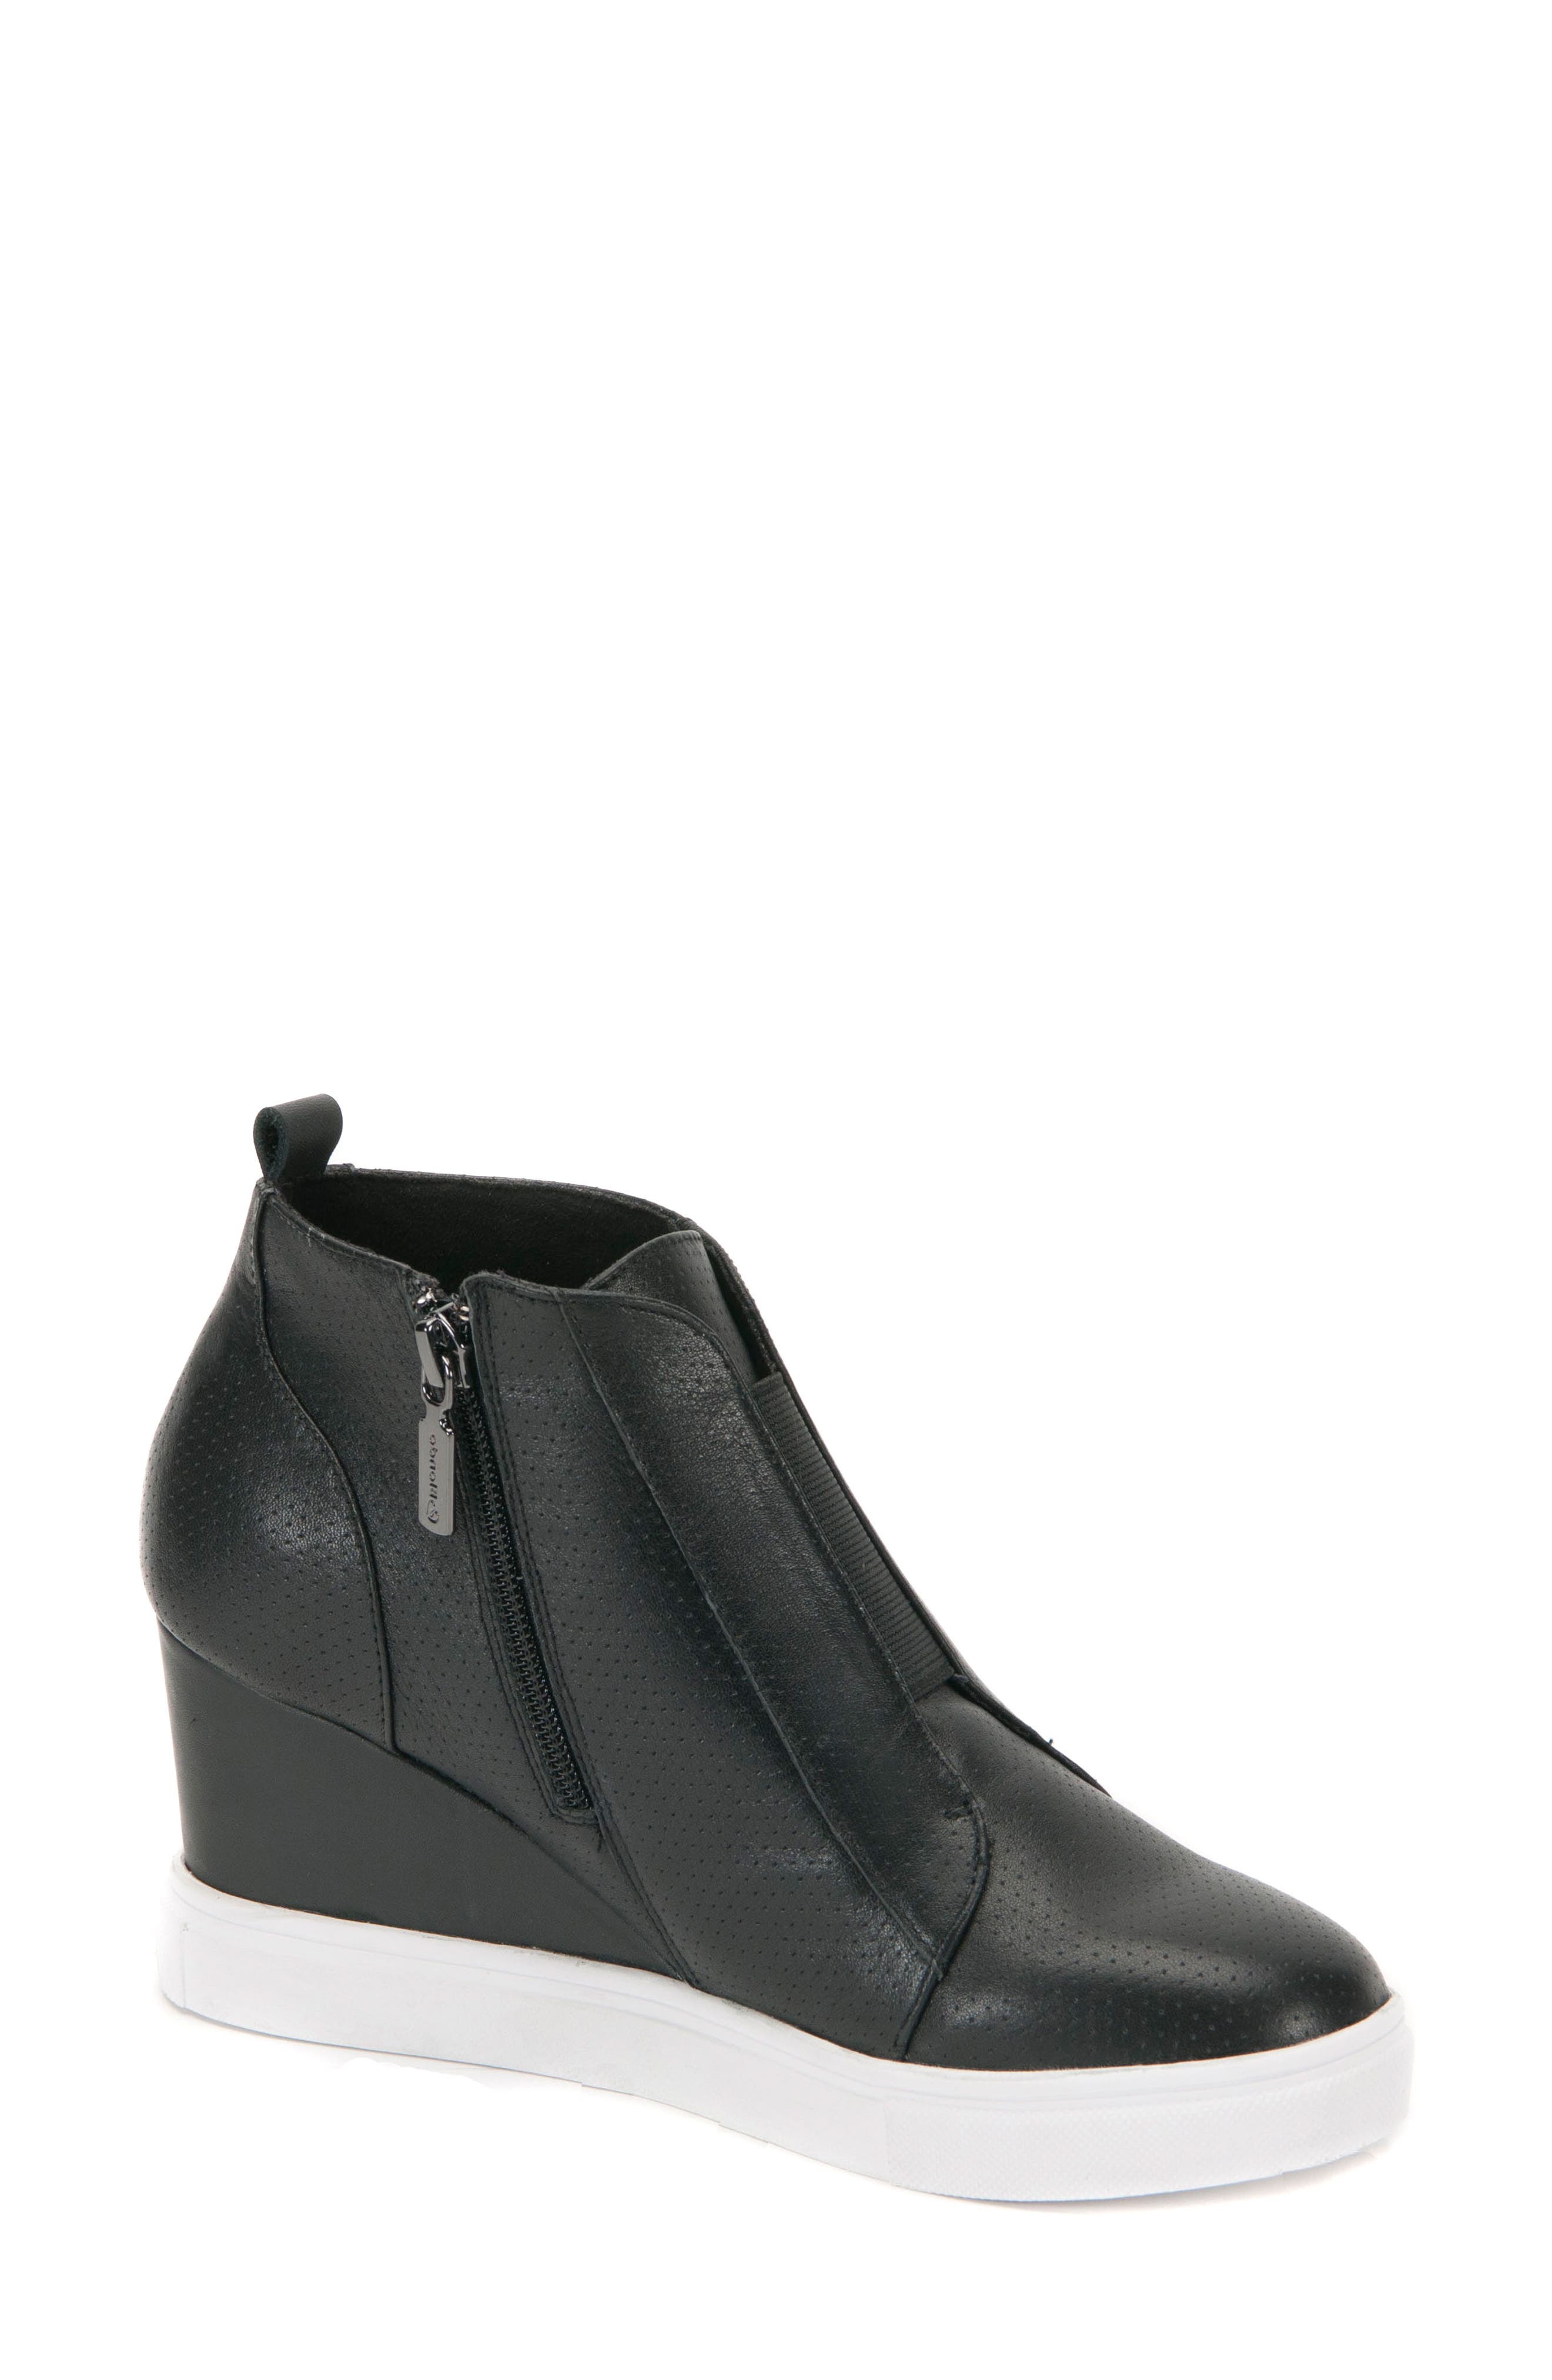 Gatsby Waterproof Wedge Bootie,                         Main,                         color, BLACK LEATHER